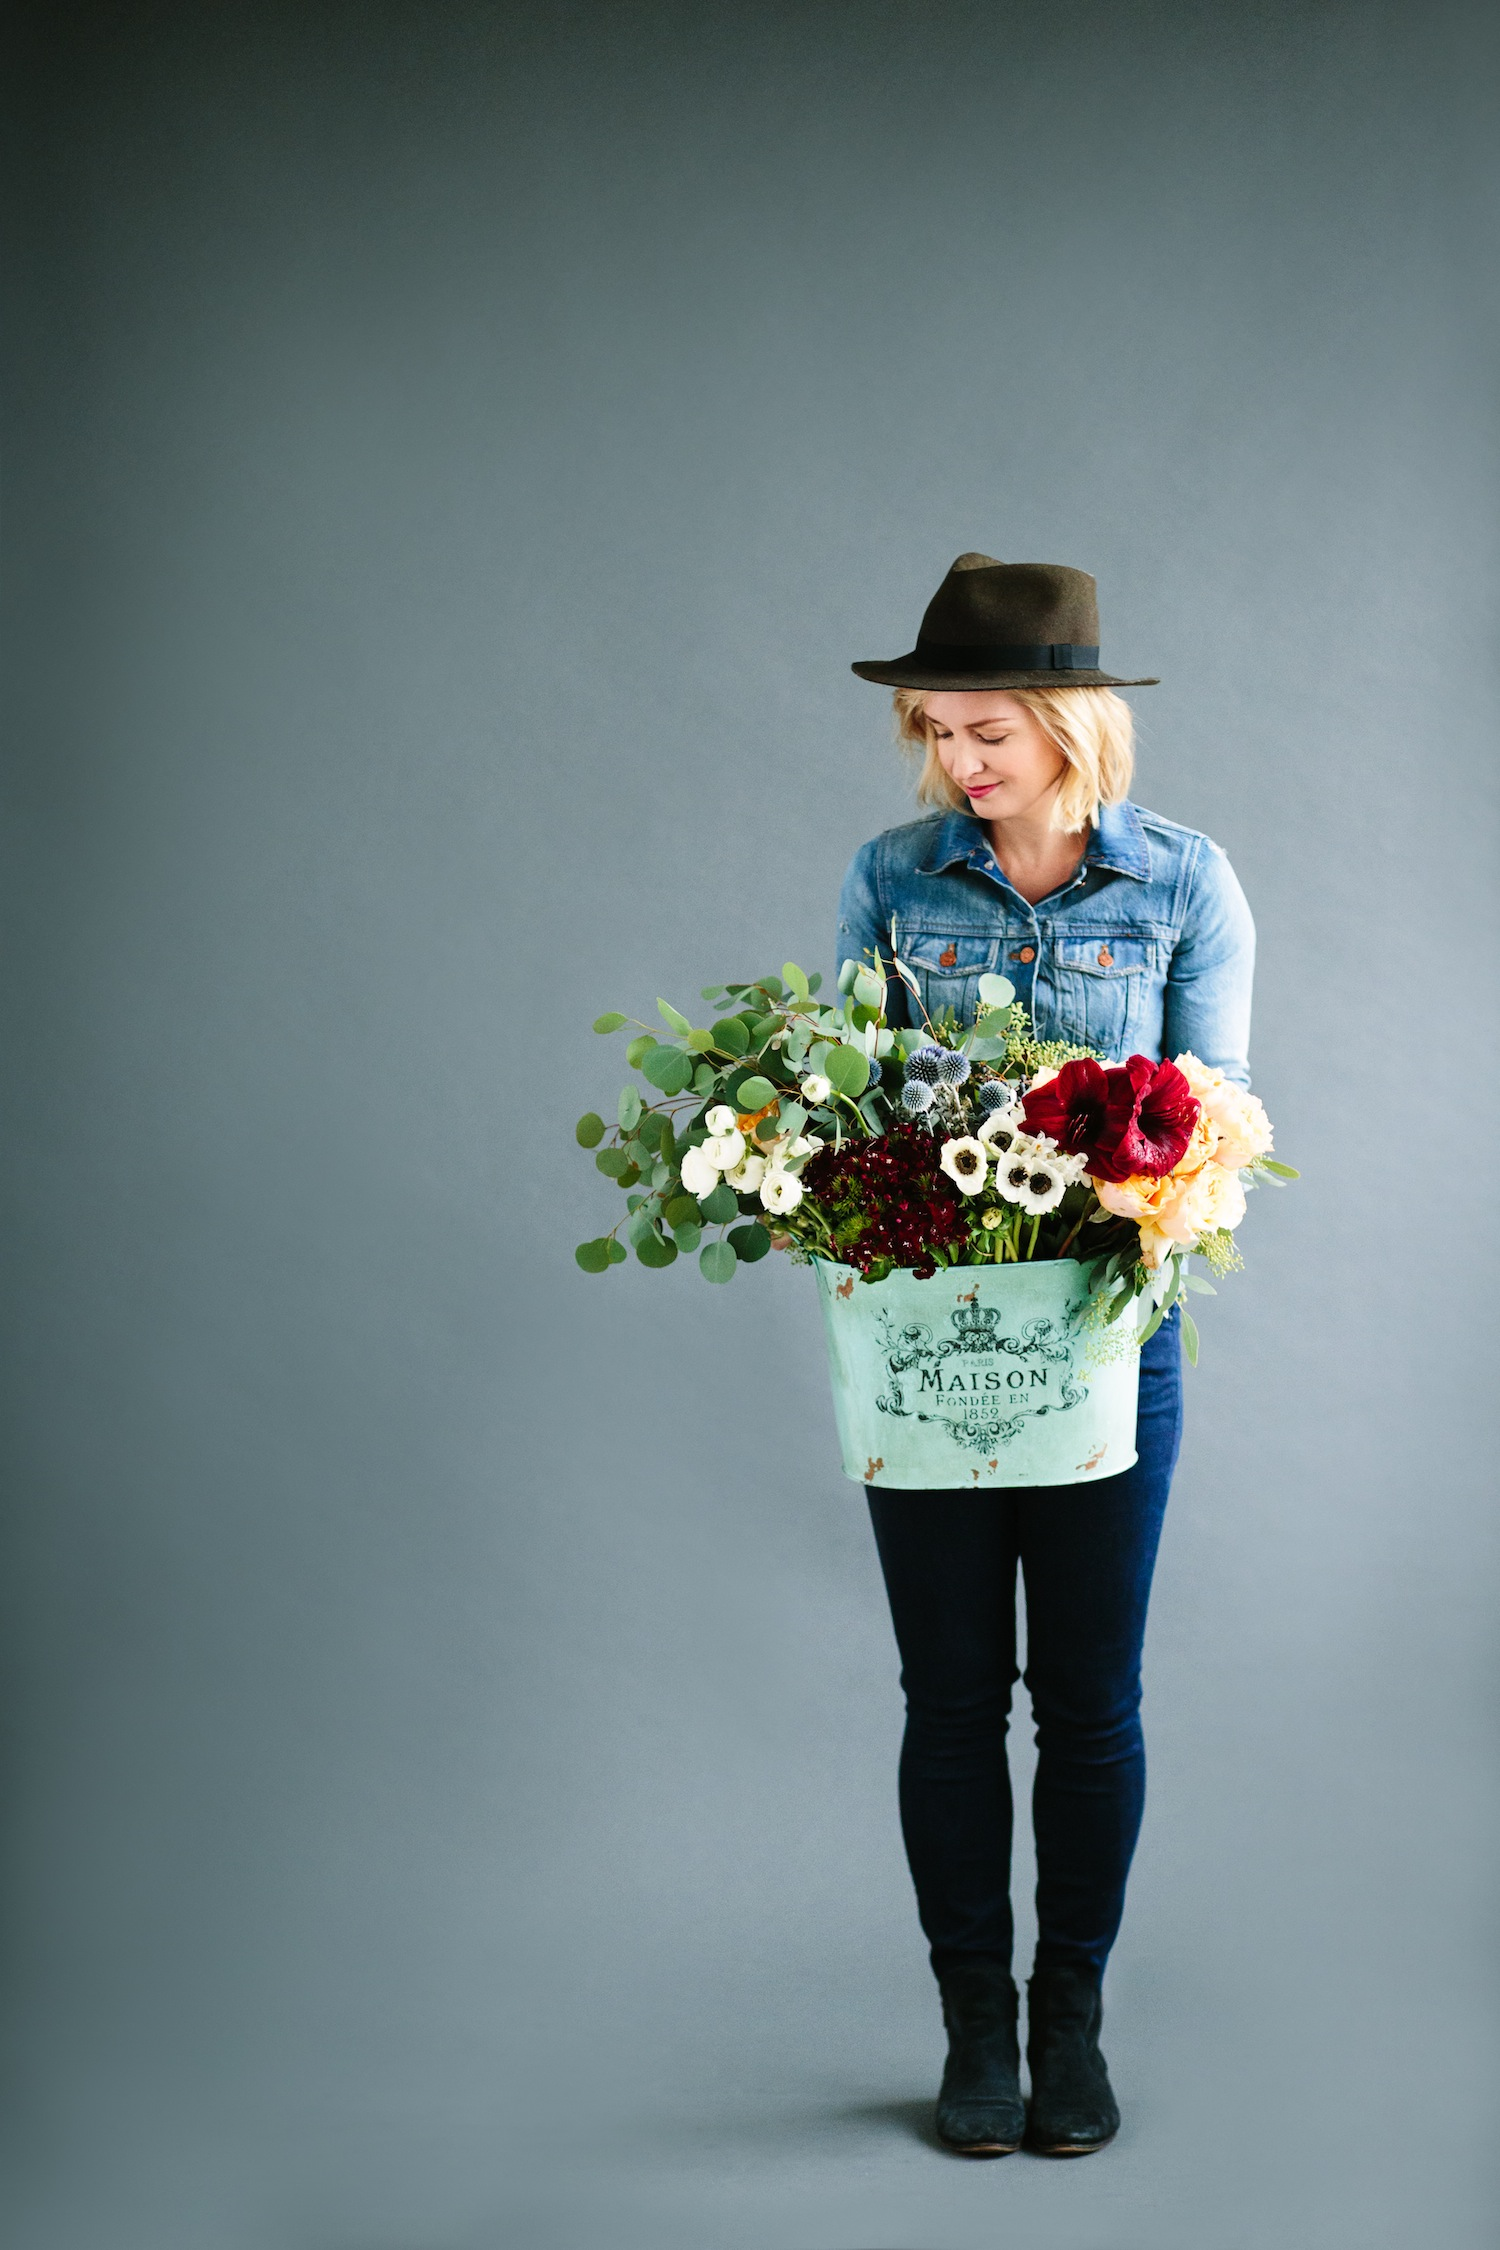 Everything You Need to Know About January Blooms - The Effortless Chic